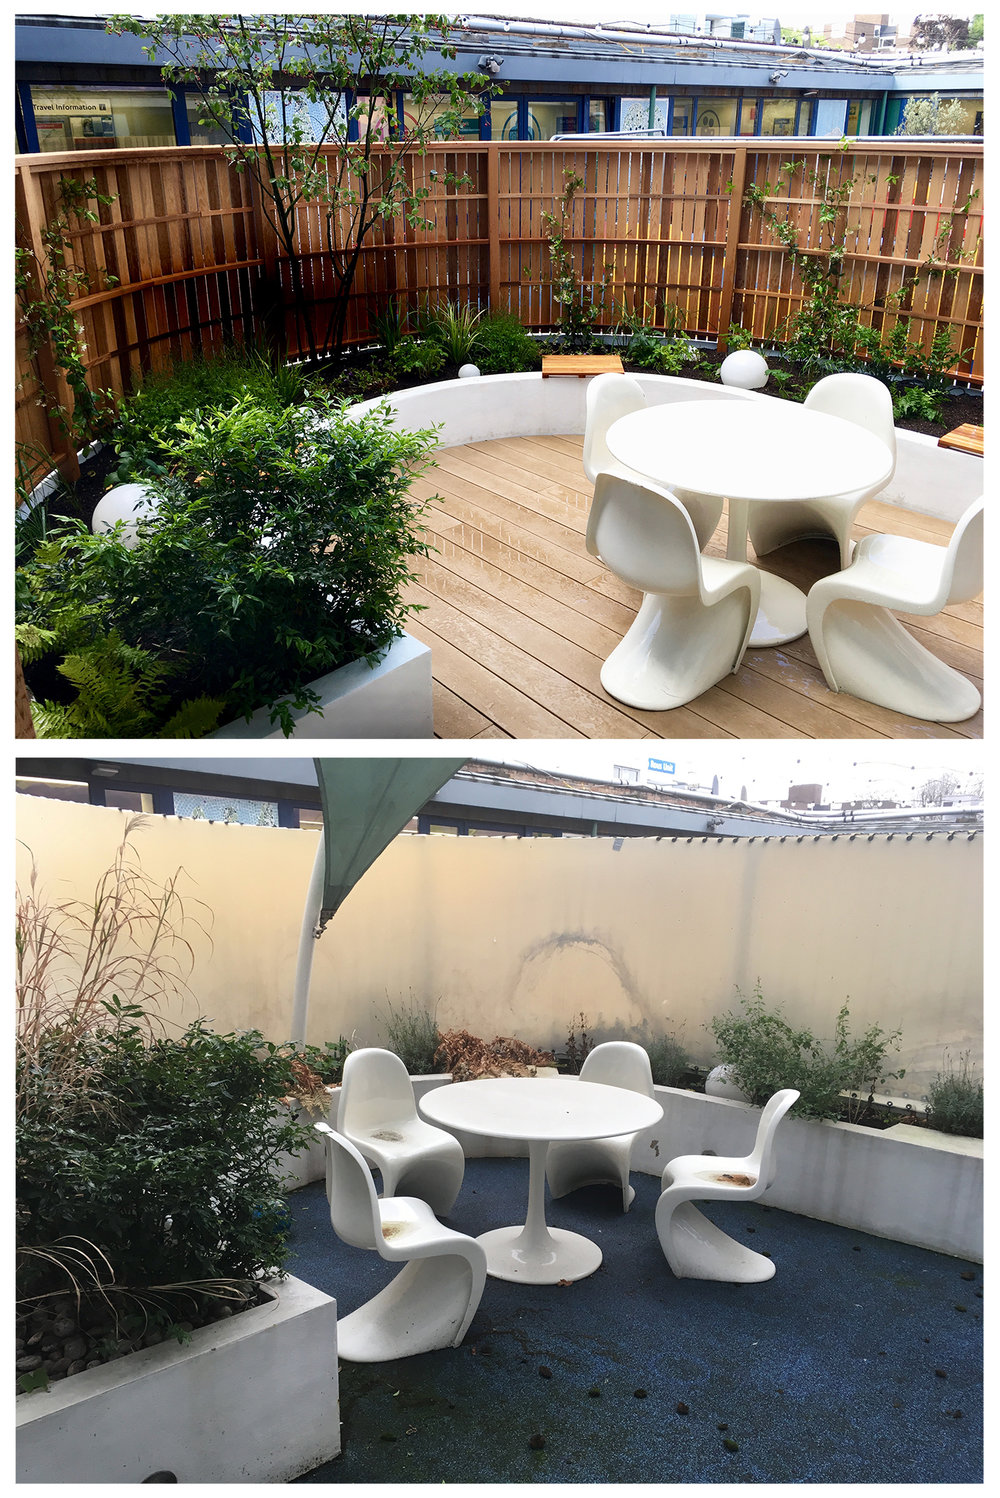 Top: The completed garden  Bottom: The garden before the works